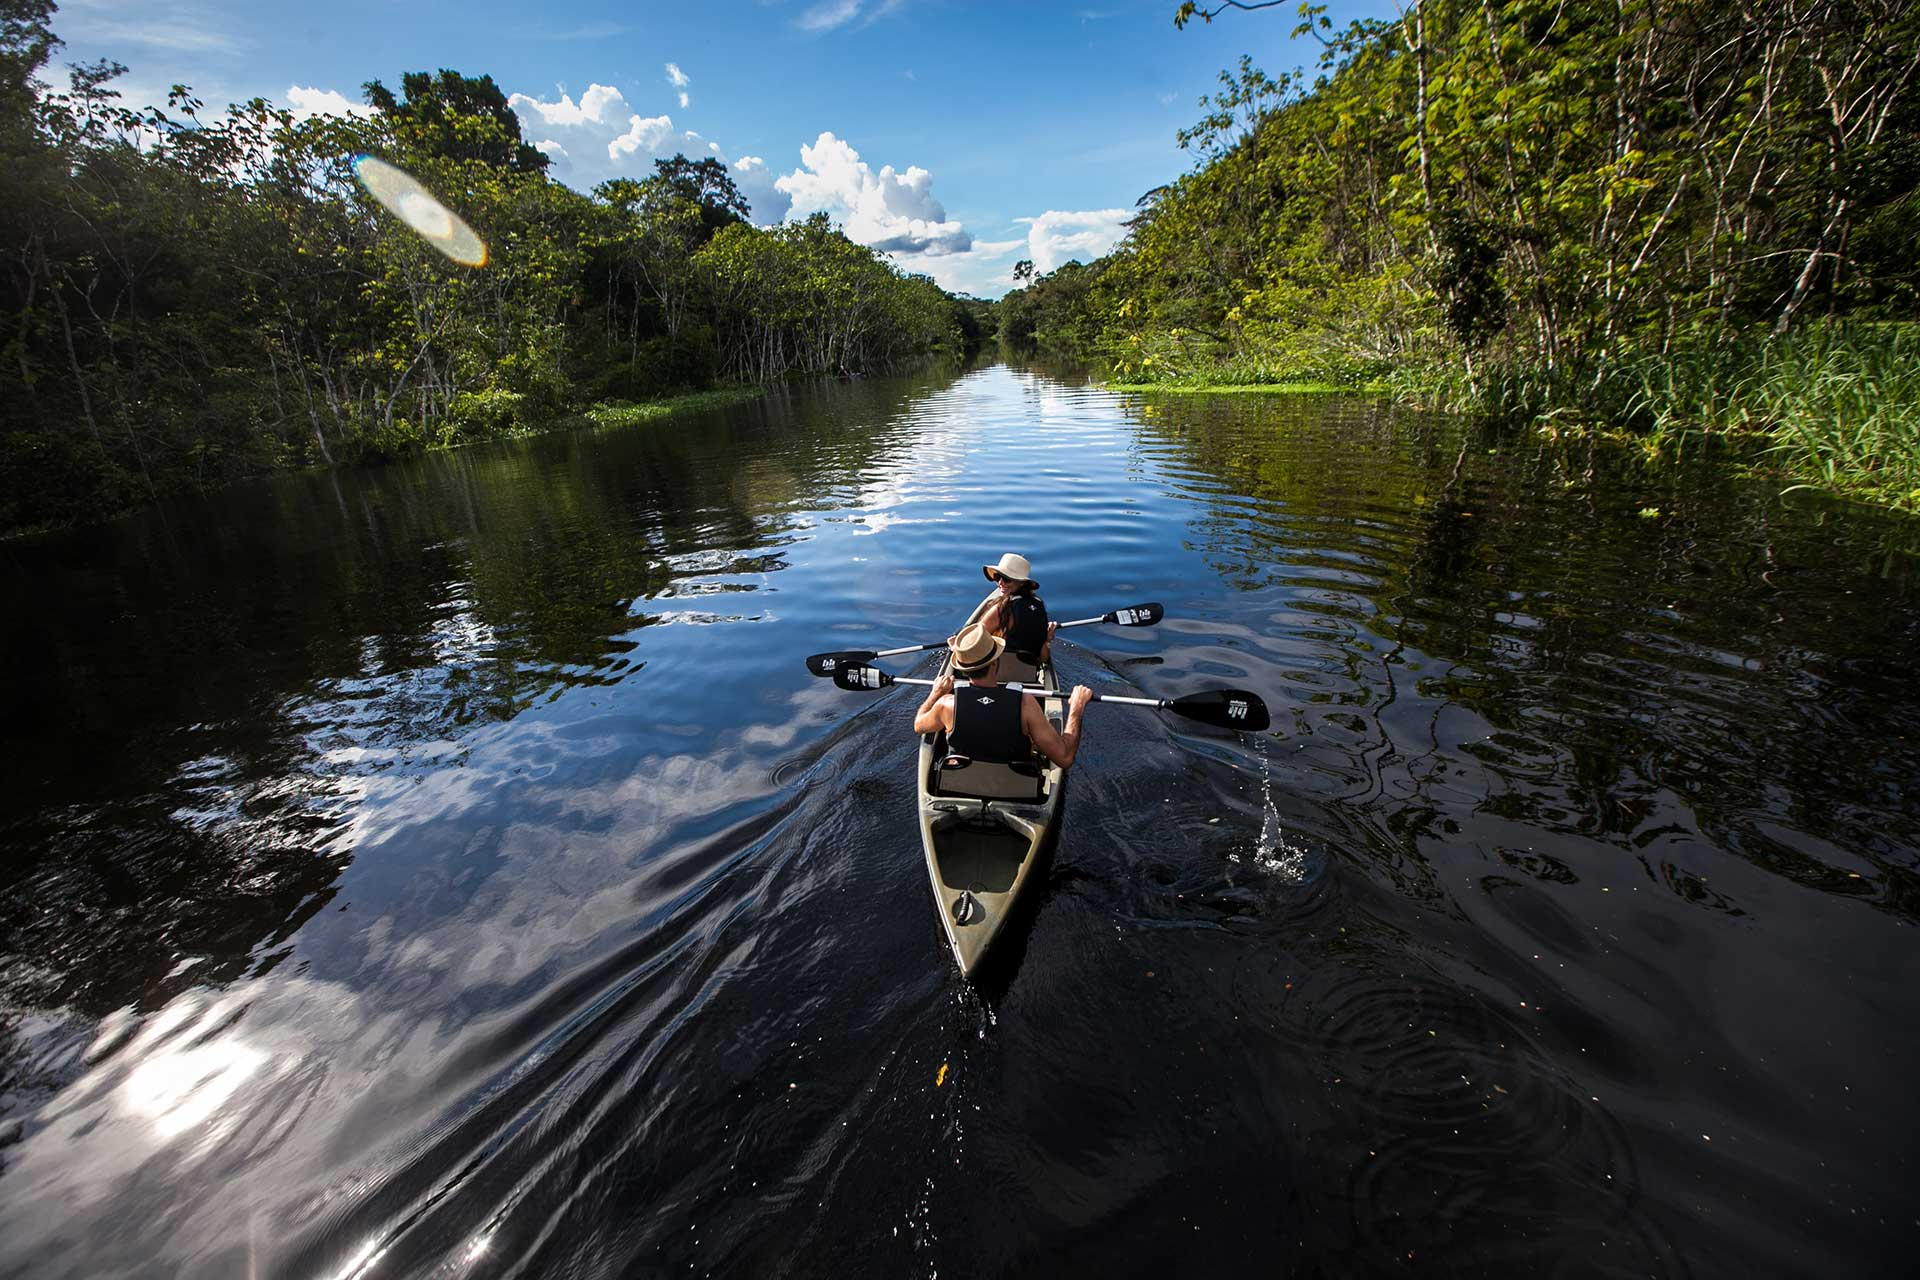 Wonderland: 7 Reasons to Cruise the Amazon By Christina Reynolds (ELLE Travel)